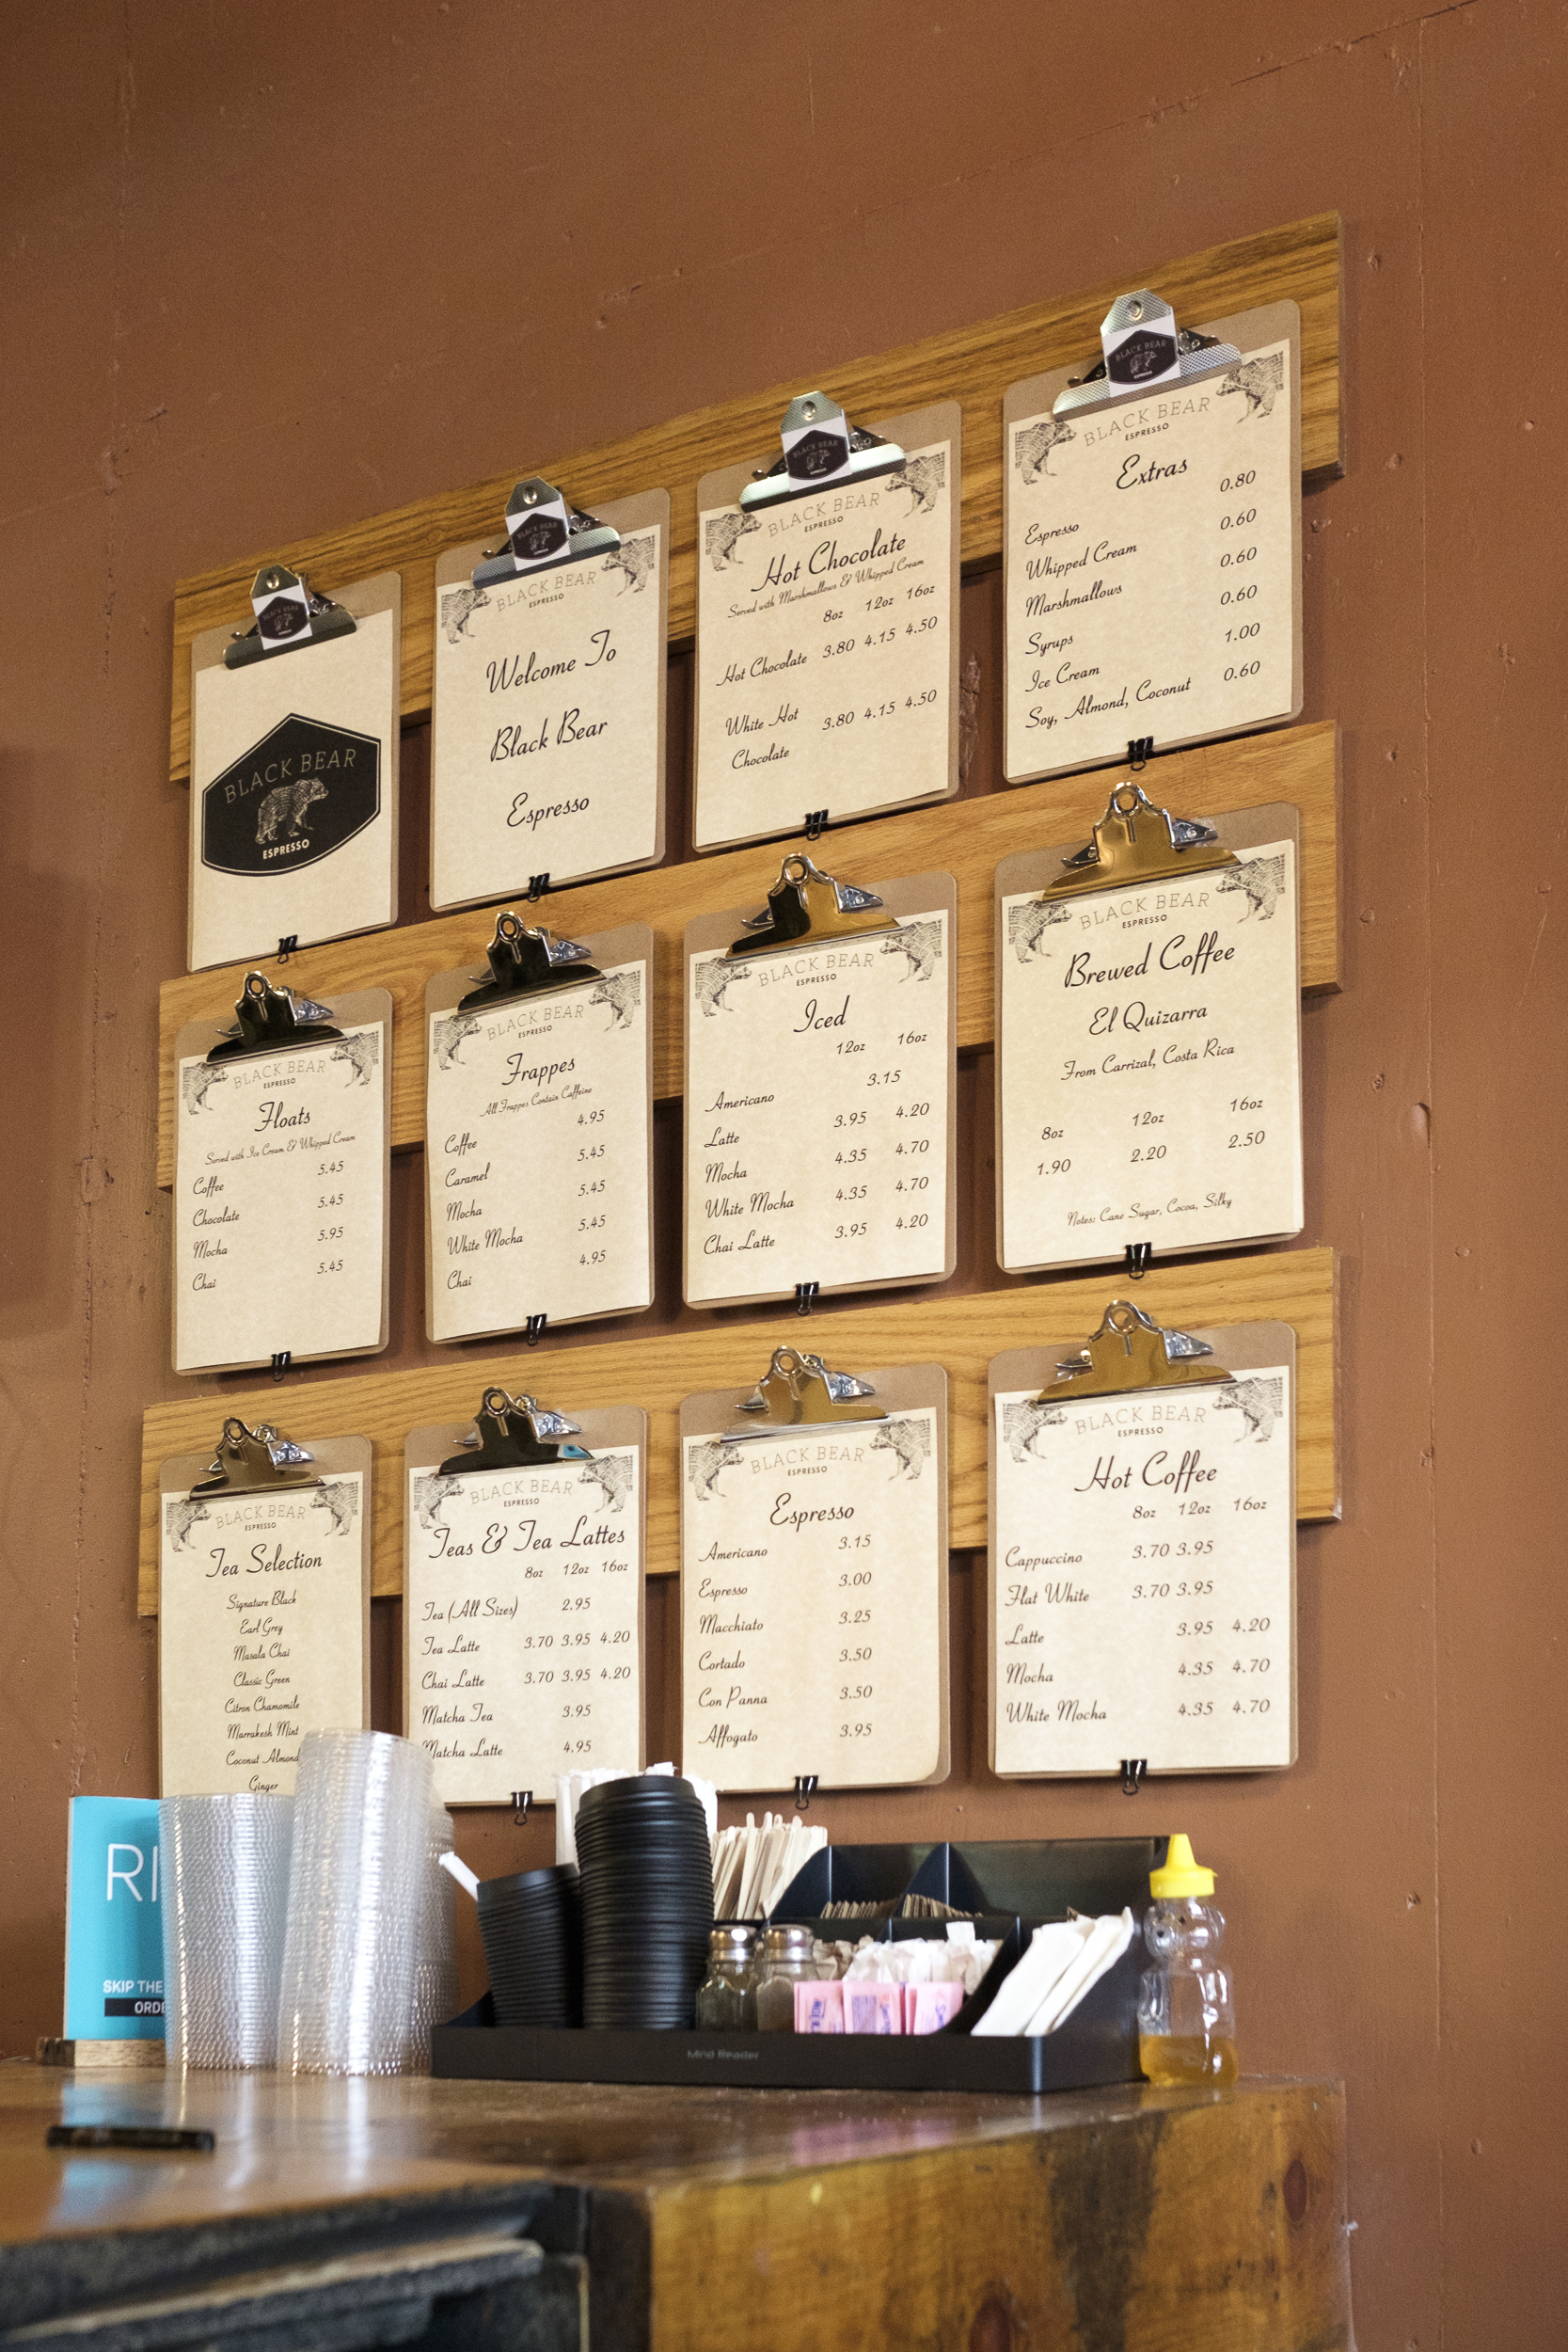 Picture of menu on boards mounted to the wall